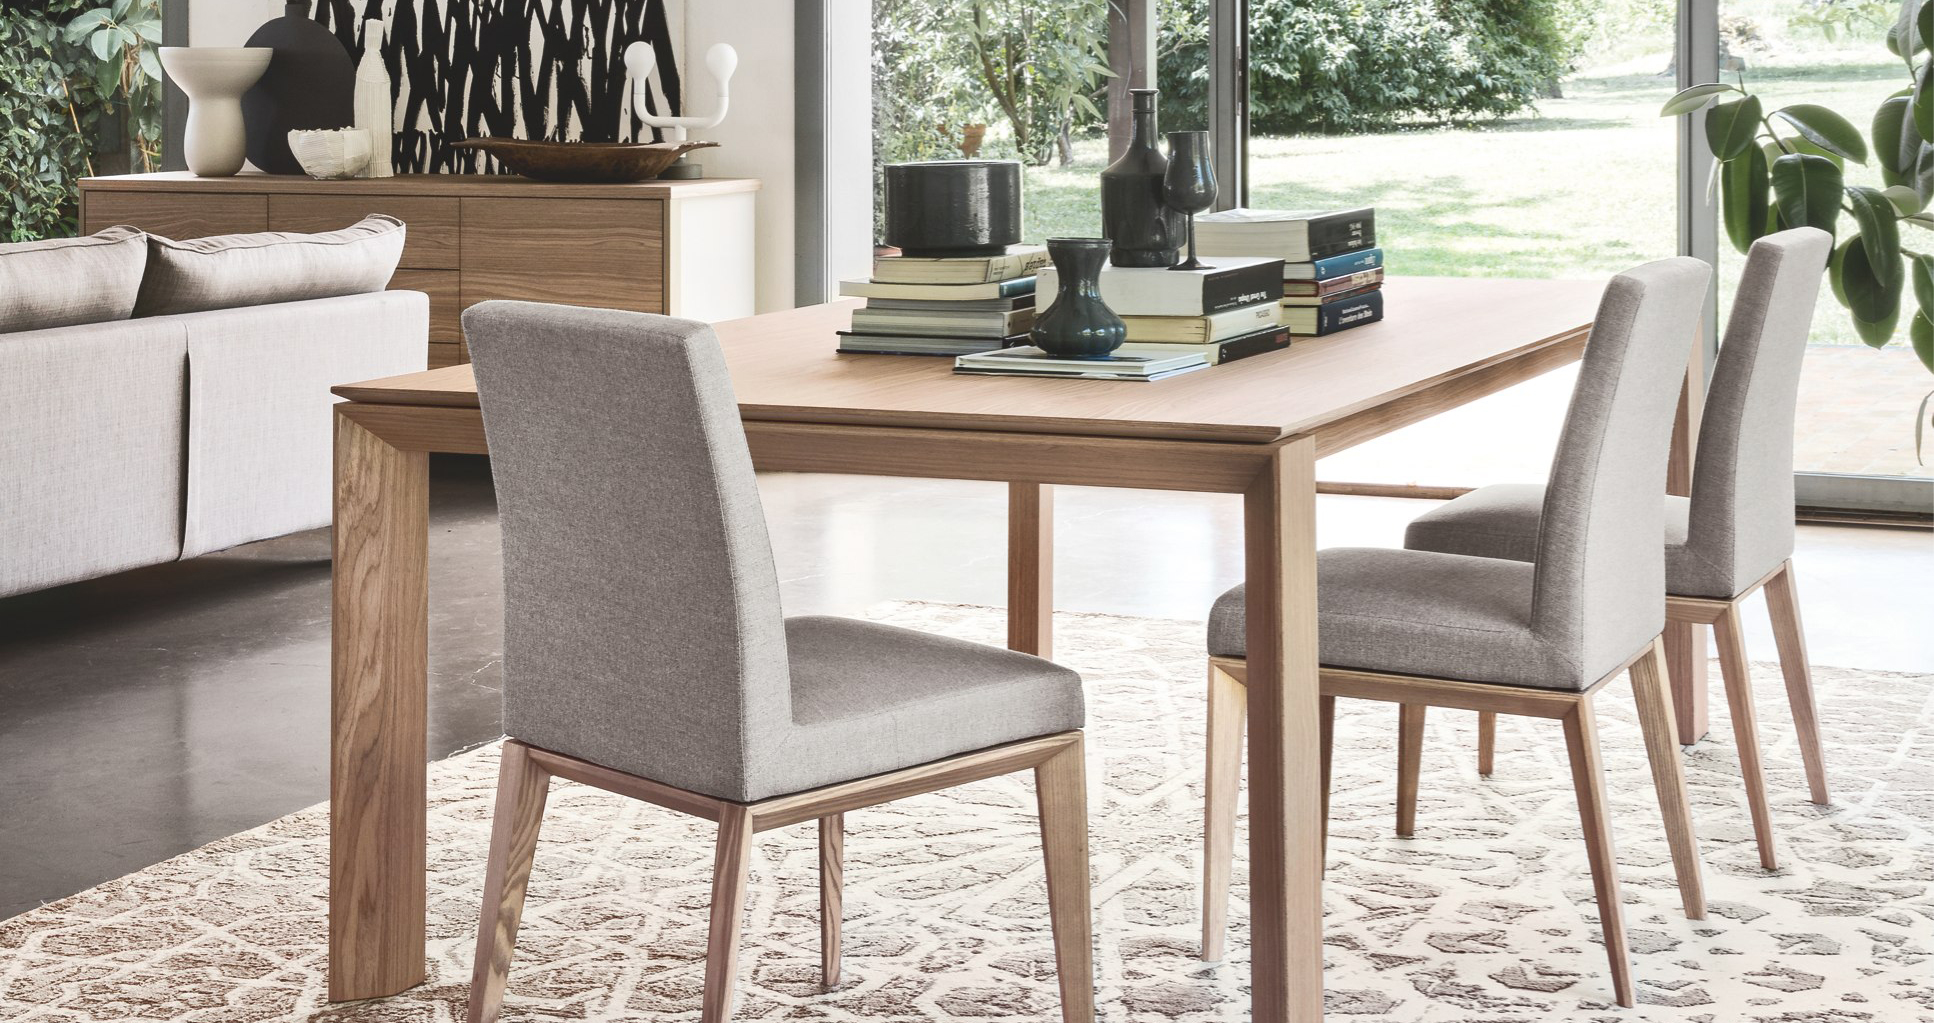 Calligaris omnia 140 wood frame extendable dining table calligaris toronto store - Sedia bess calligaris ...